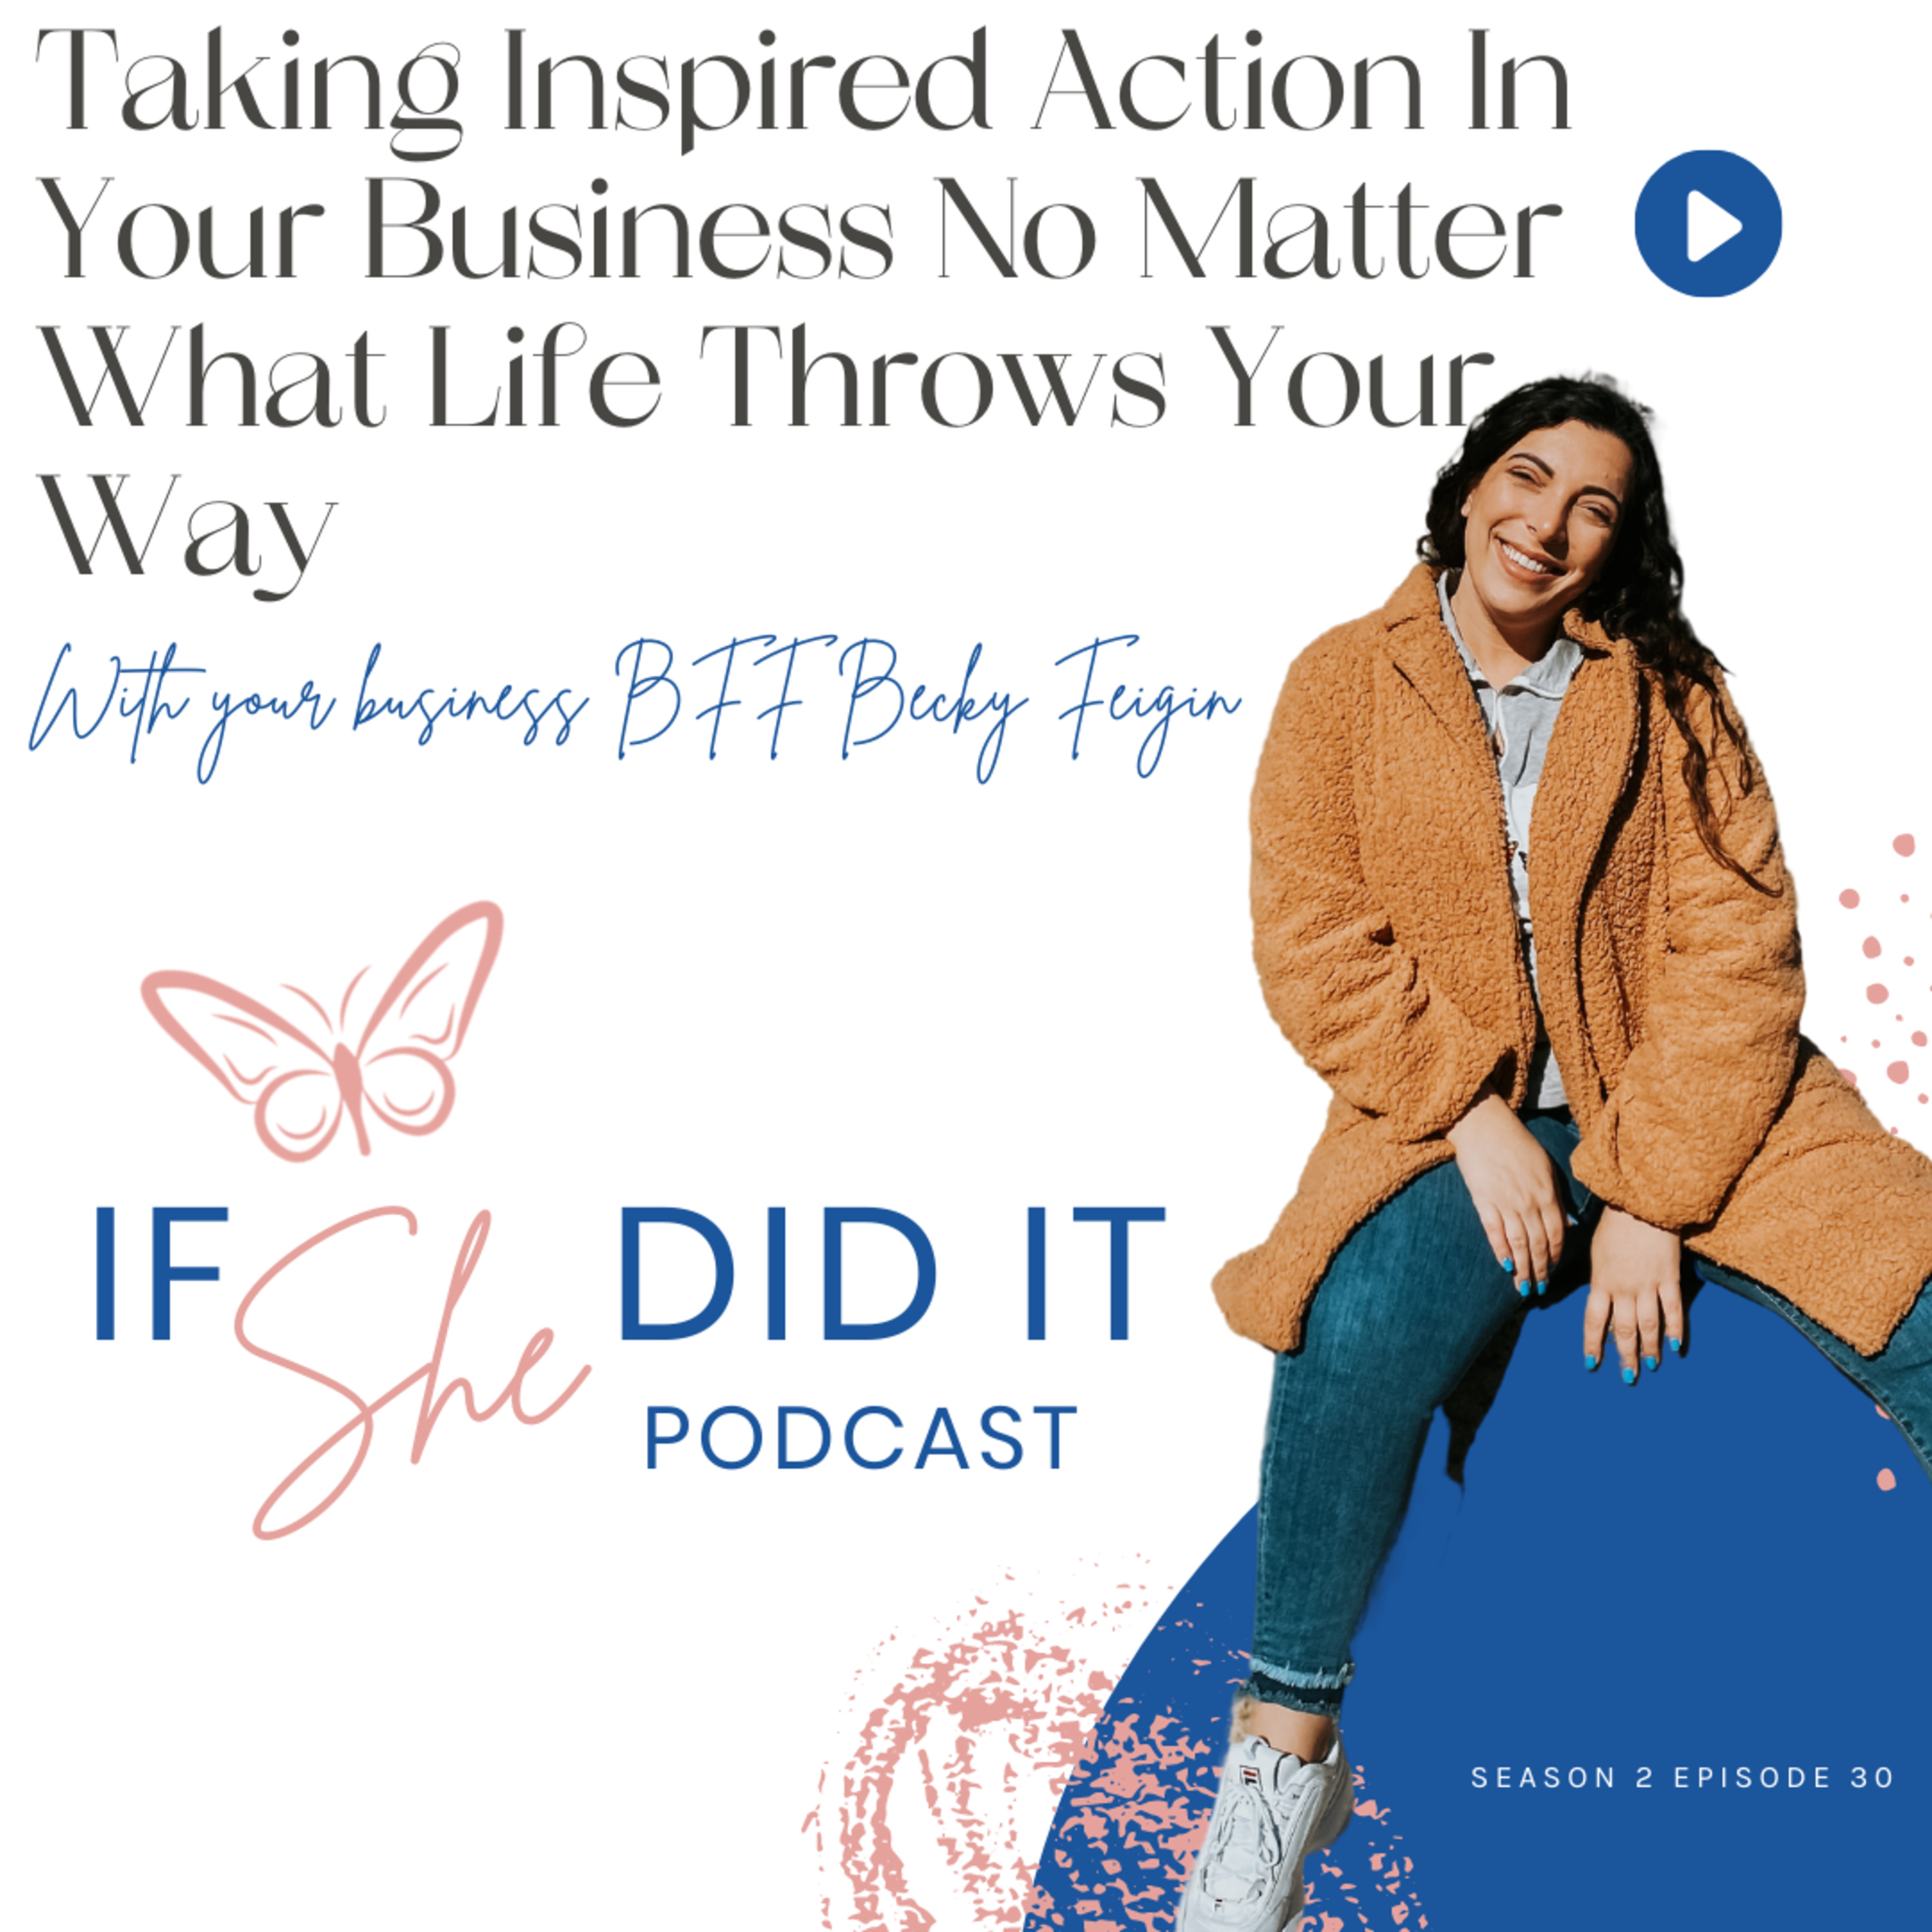 Taking Inspired Action In Your Business No Matter What Life Throws Your Way